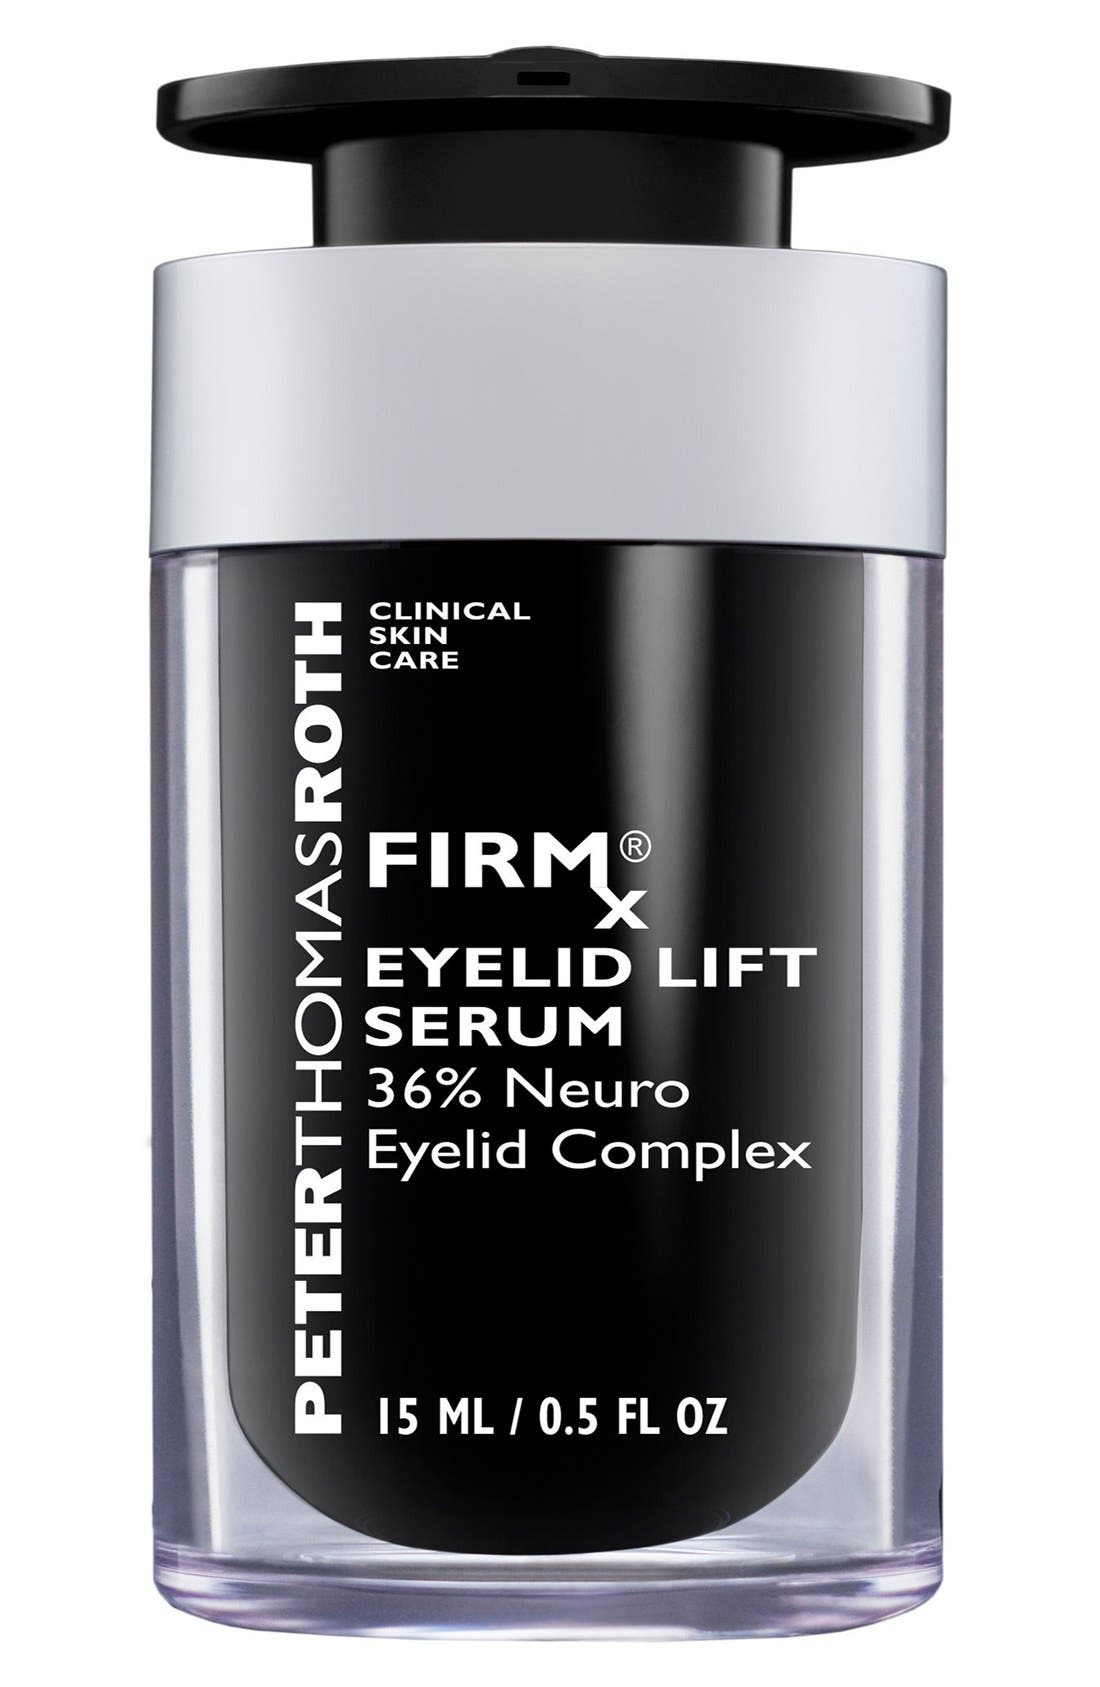 Peter Thomas Roth Firmx™ Eyelid Serum